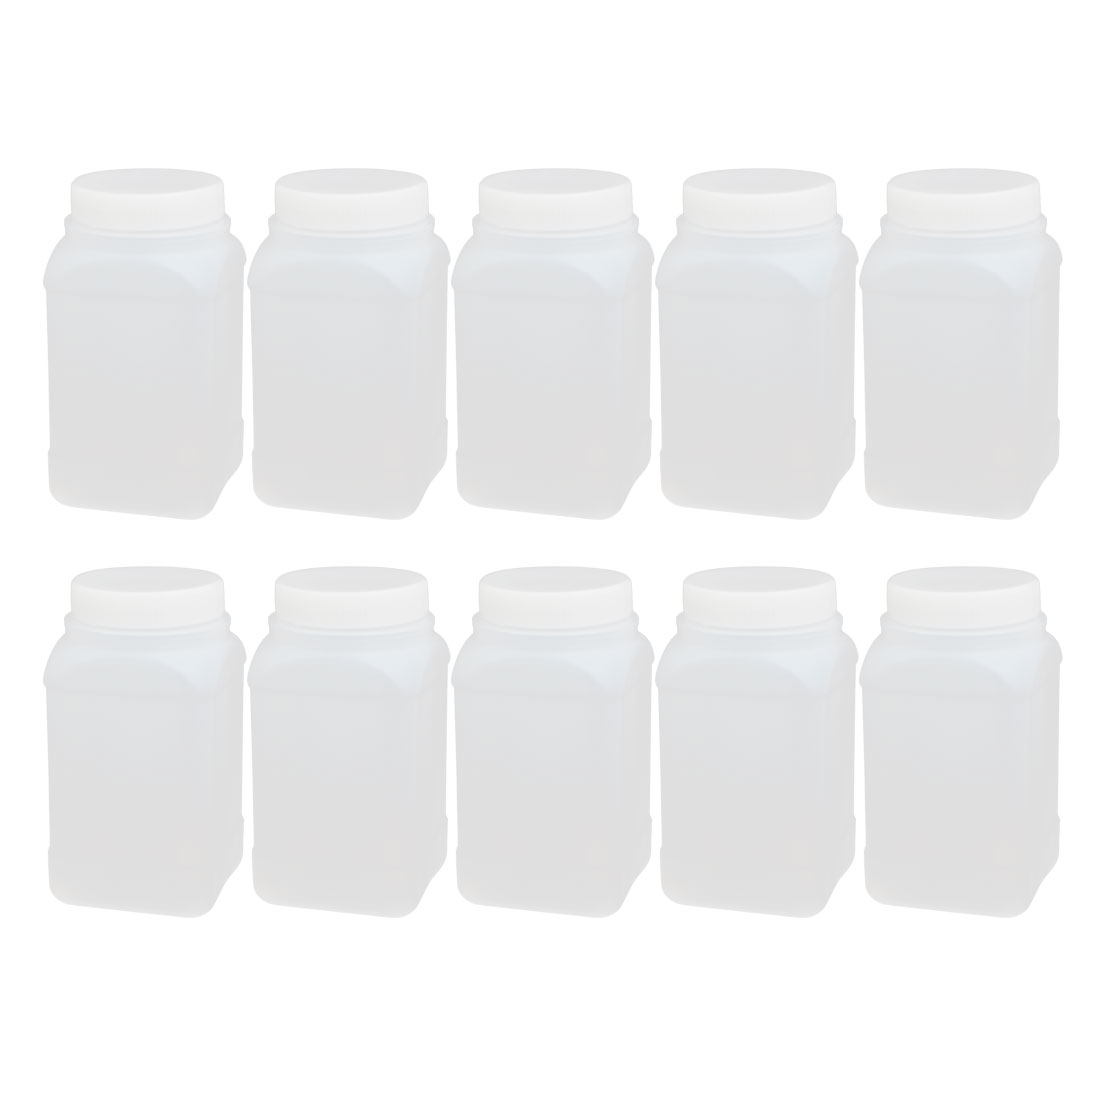 10pcs 500ml Plastic Square Wide Mouth Chemical Sample Reagent Bottle Thickening